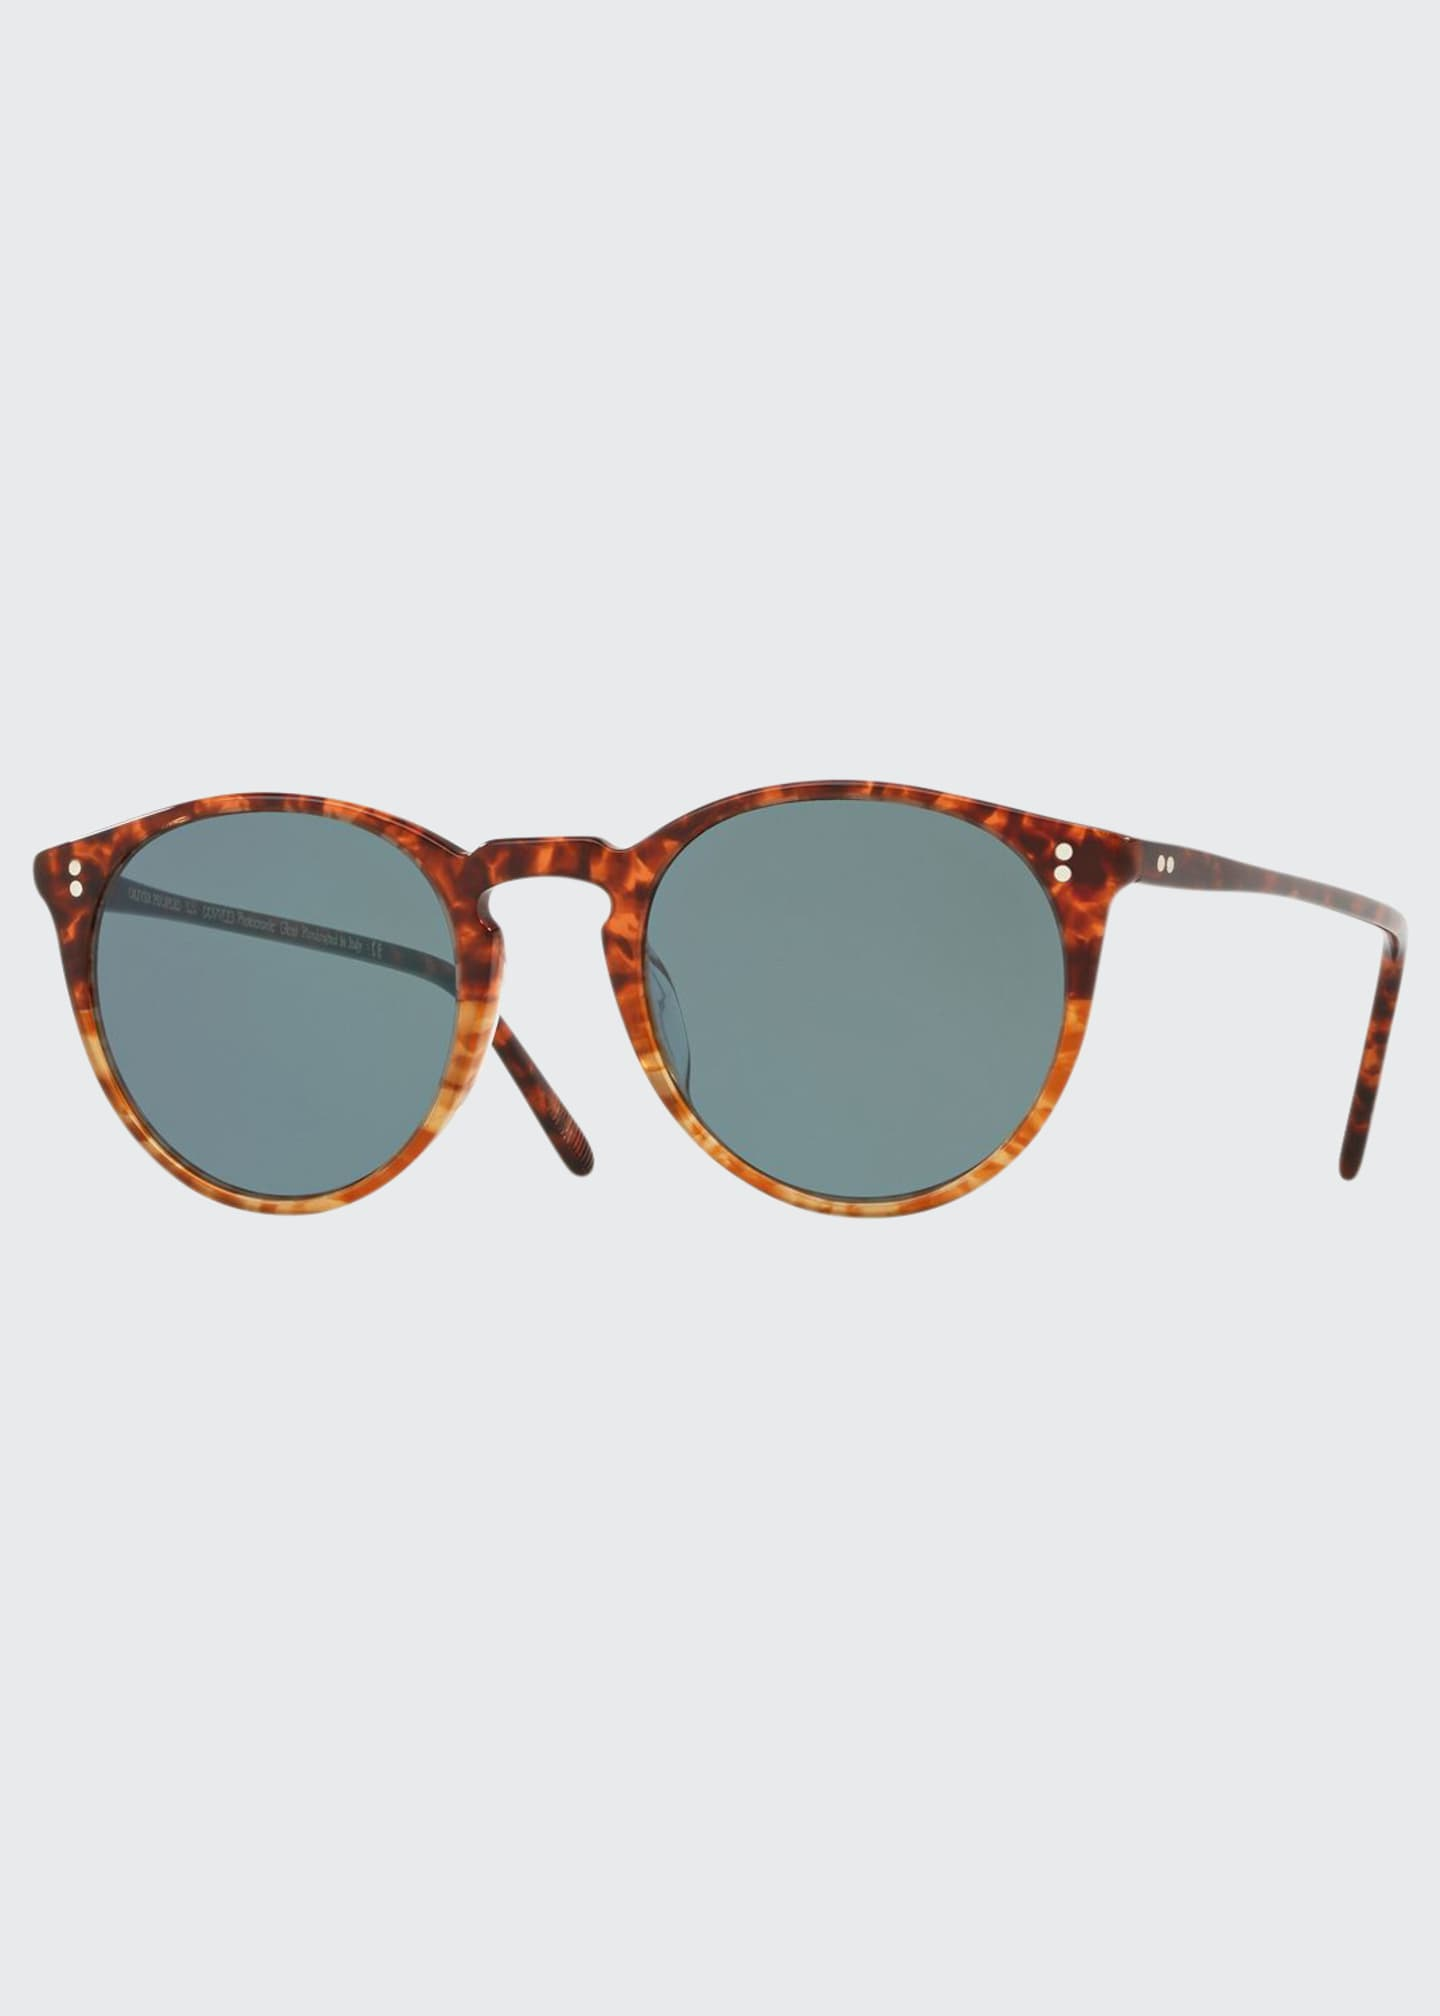 Image 1 of 1: O'Malley Peaked Round Photochromic Sunglasses